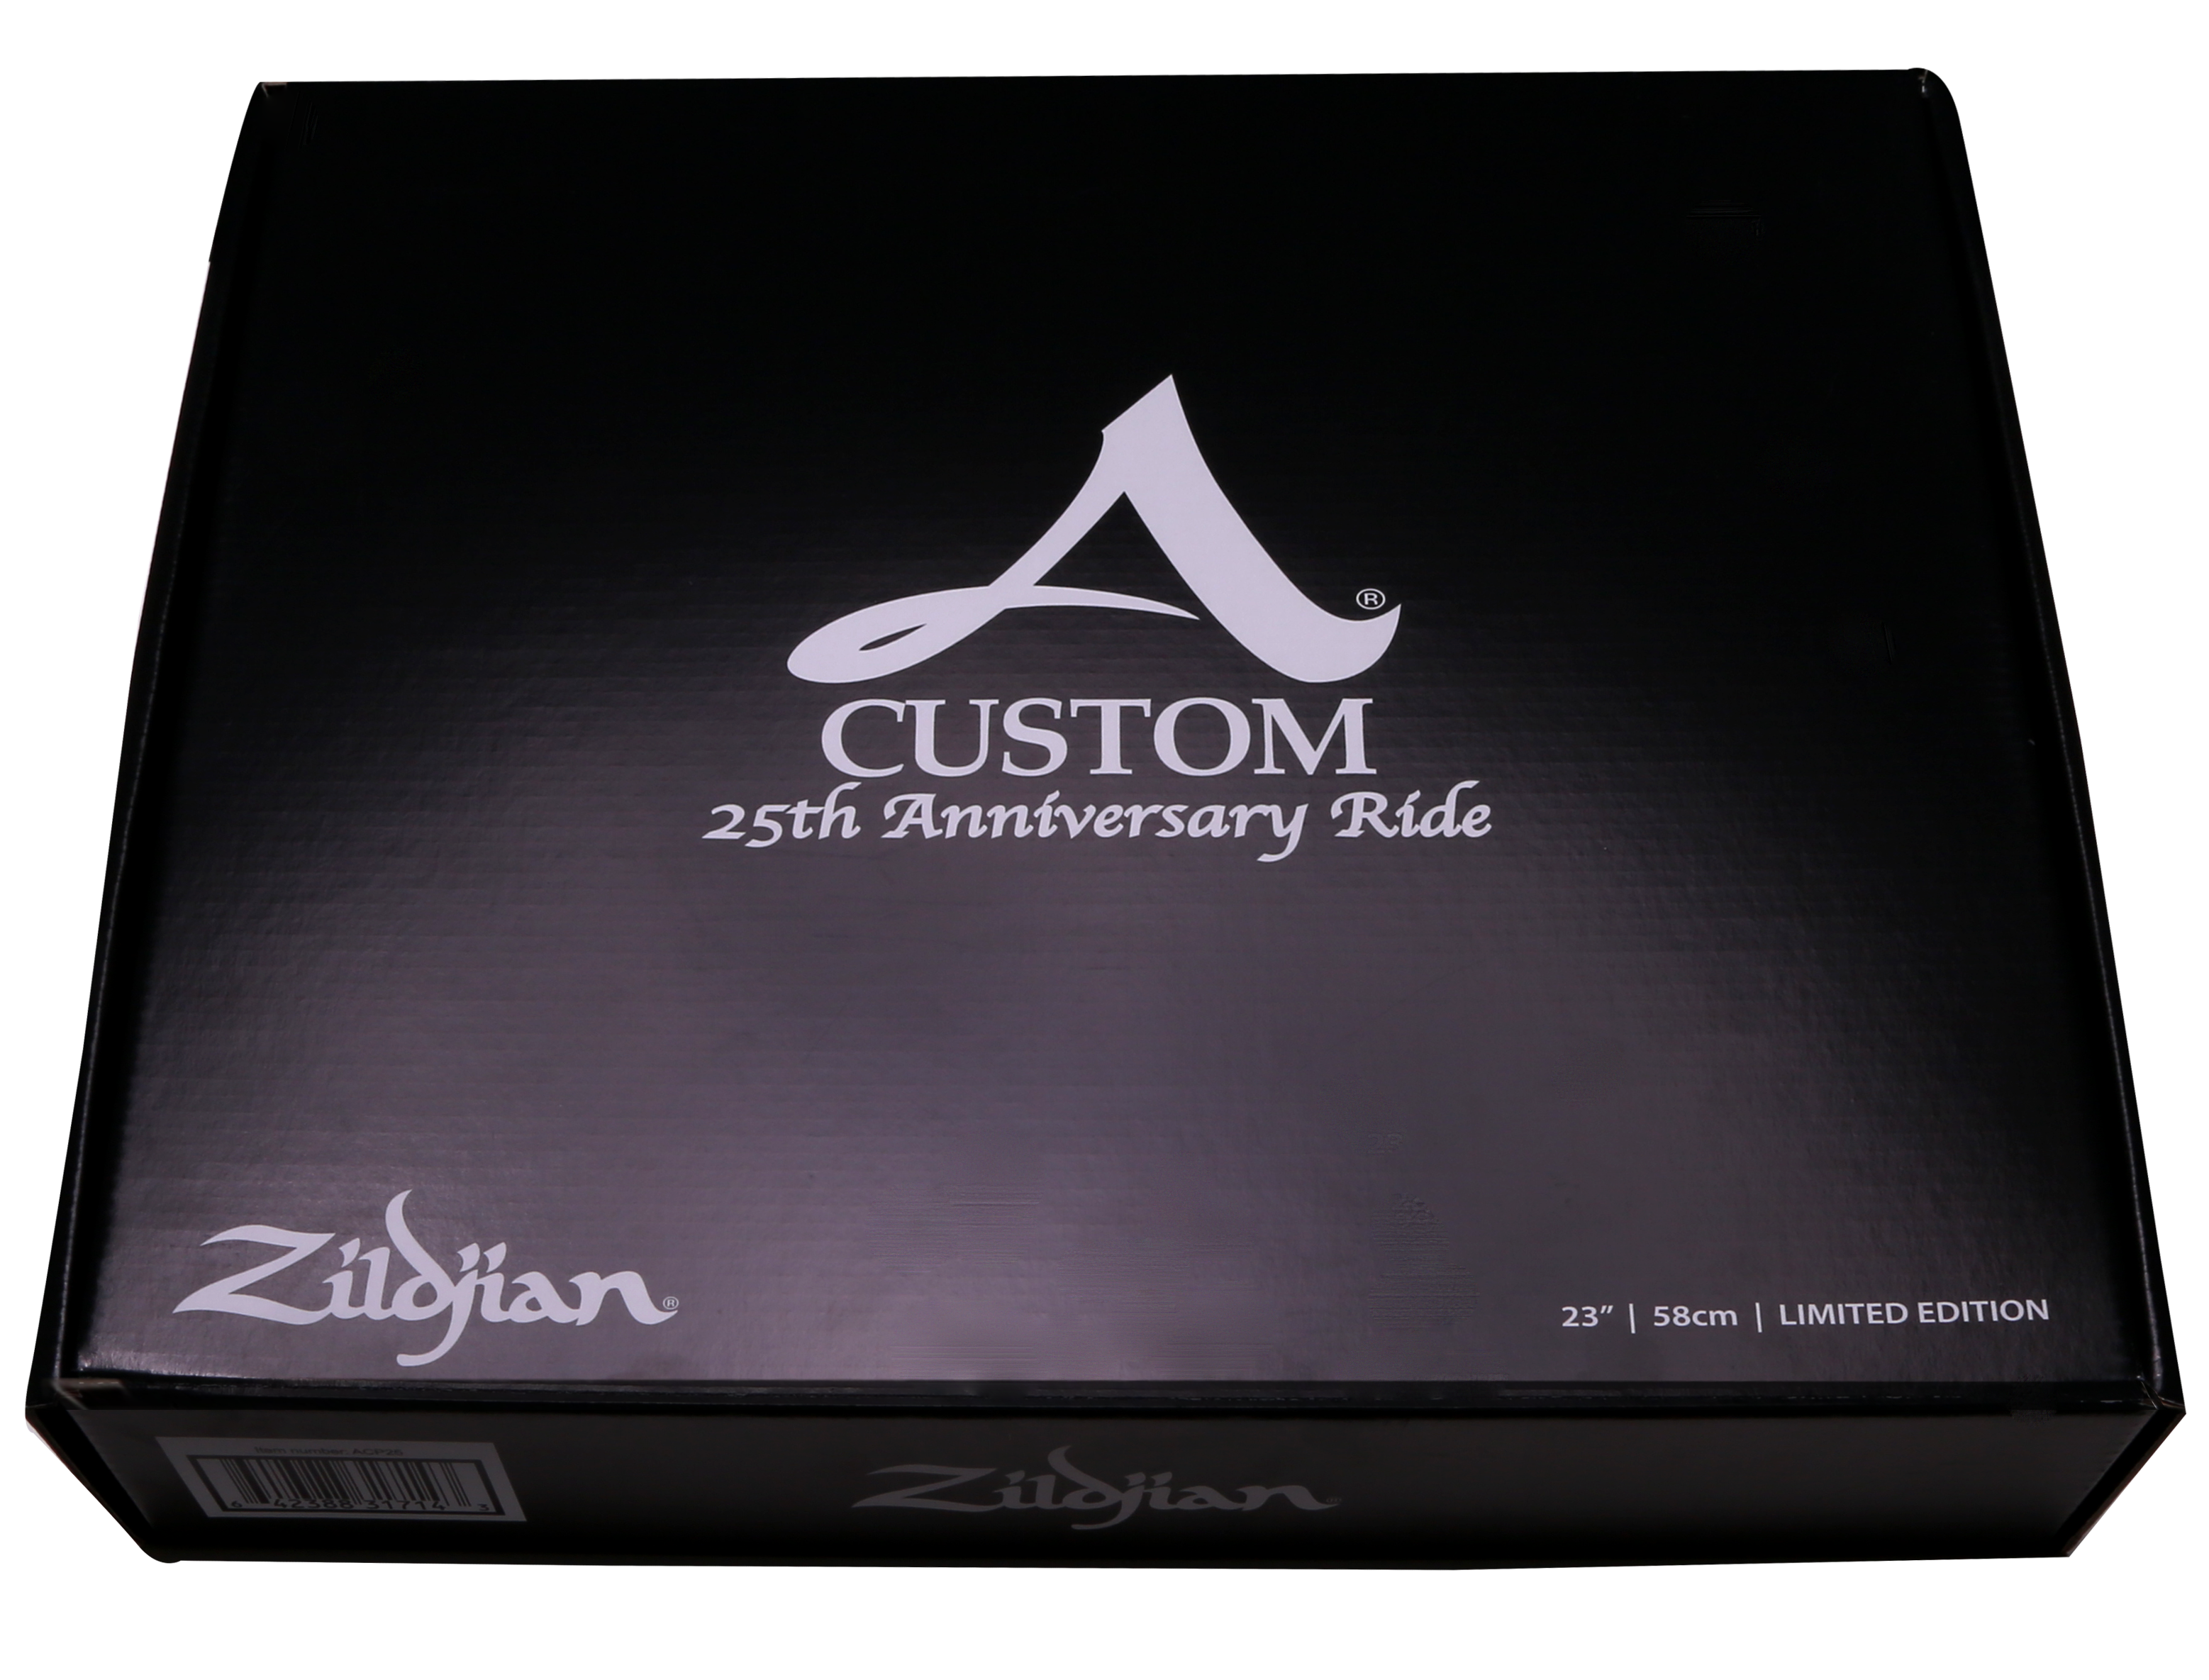 "23"" A Custom 25th Anniversary Ride - Limited Edition"